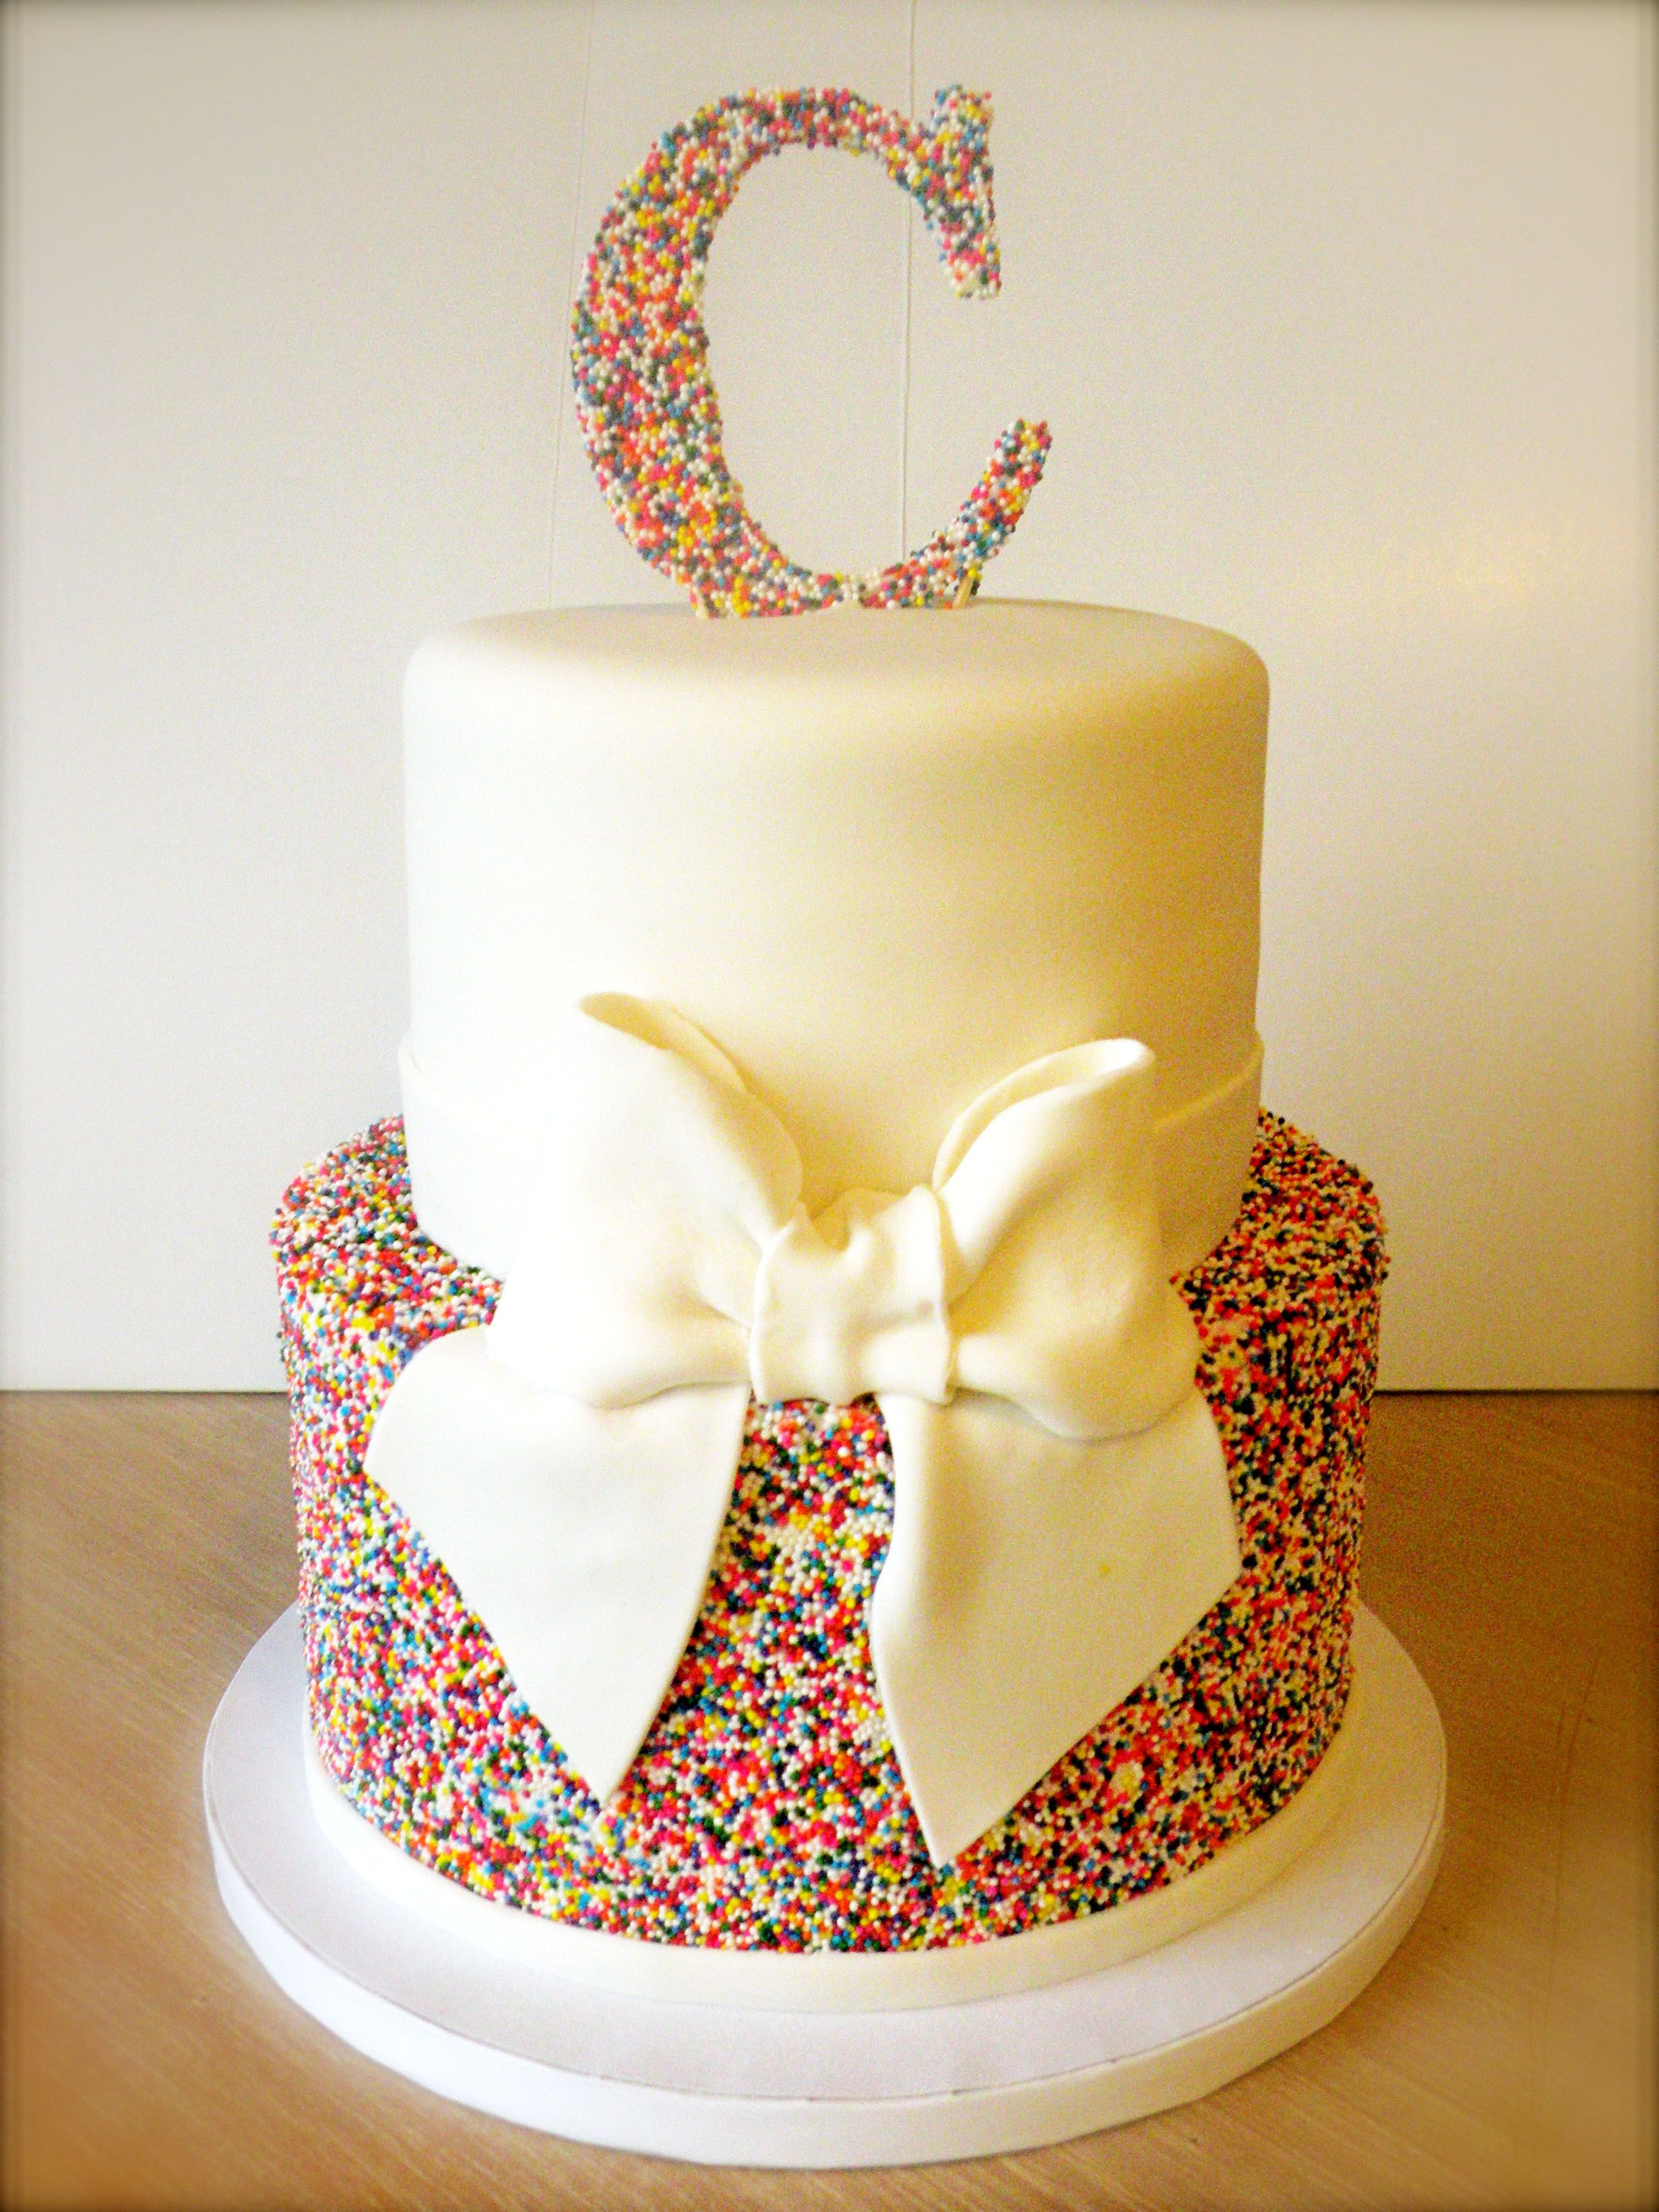 Natalie s creative cakes animal cakes - Find This Pin And More On Taartjes Rainbow Sprinkles Wedding Cake